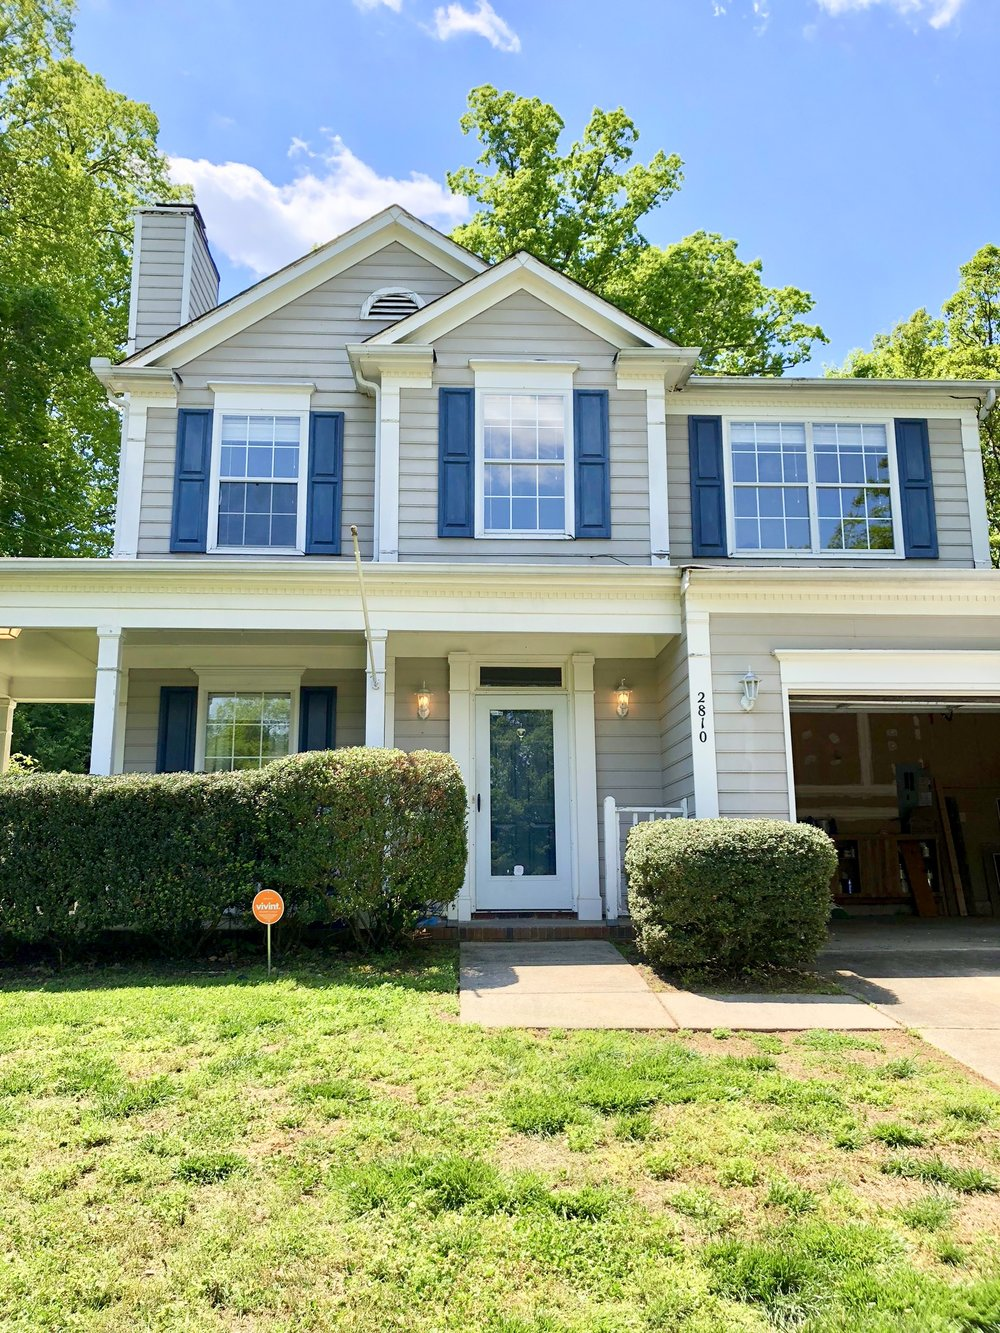 INVESTOR SPECIAL IN NORTH CHARLOTTE - Perfect home for a first time homebuyer or investor! 3 bed 2 1/2 baths on a large, private, fenced cul-de-sac lot! Dining room was converted into office/flex space off the kitchen. New roof in 2016, AC unit approx 1 year old! Two car garage, wrap around front porch, brand new carpet and fresh paint. NO HOA!! Home is being sold AS-IS, seller will not make additional repairs. Ideal location with easy access to highways, uptown, Northlake Mall, Latta Plantation and minutes to the new Oakdale Rd. exit on 485! Come make this house your HOME